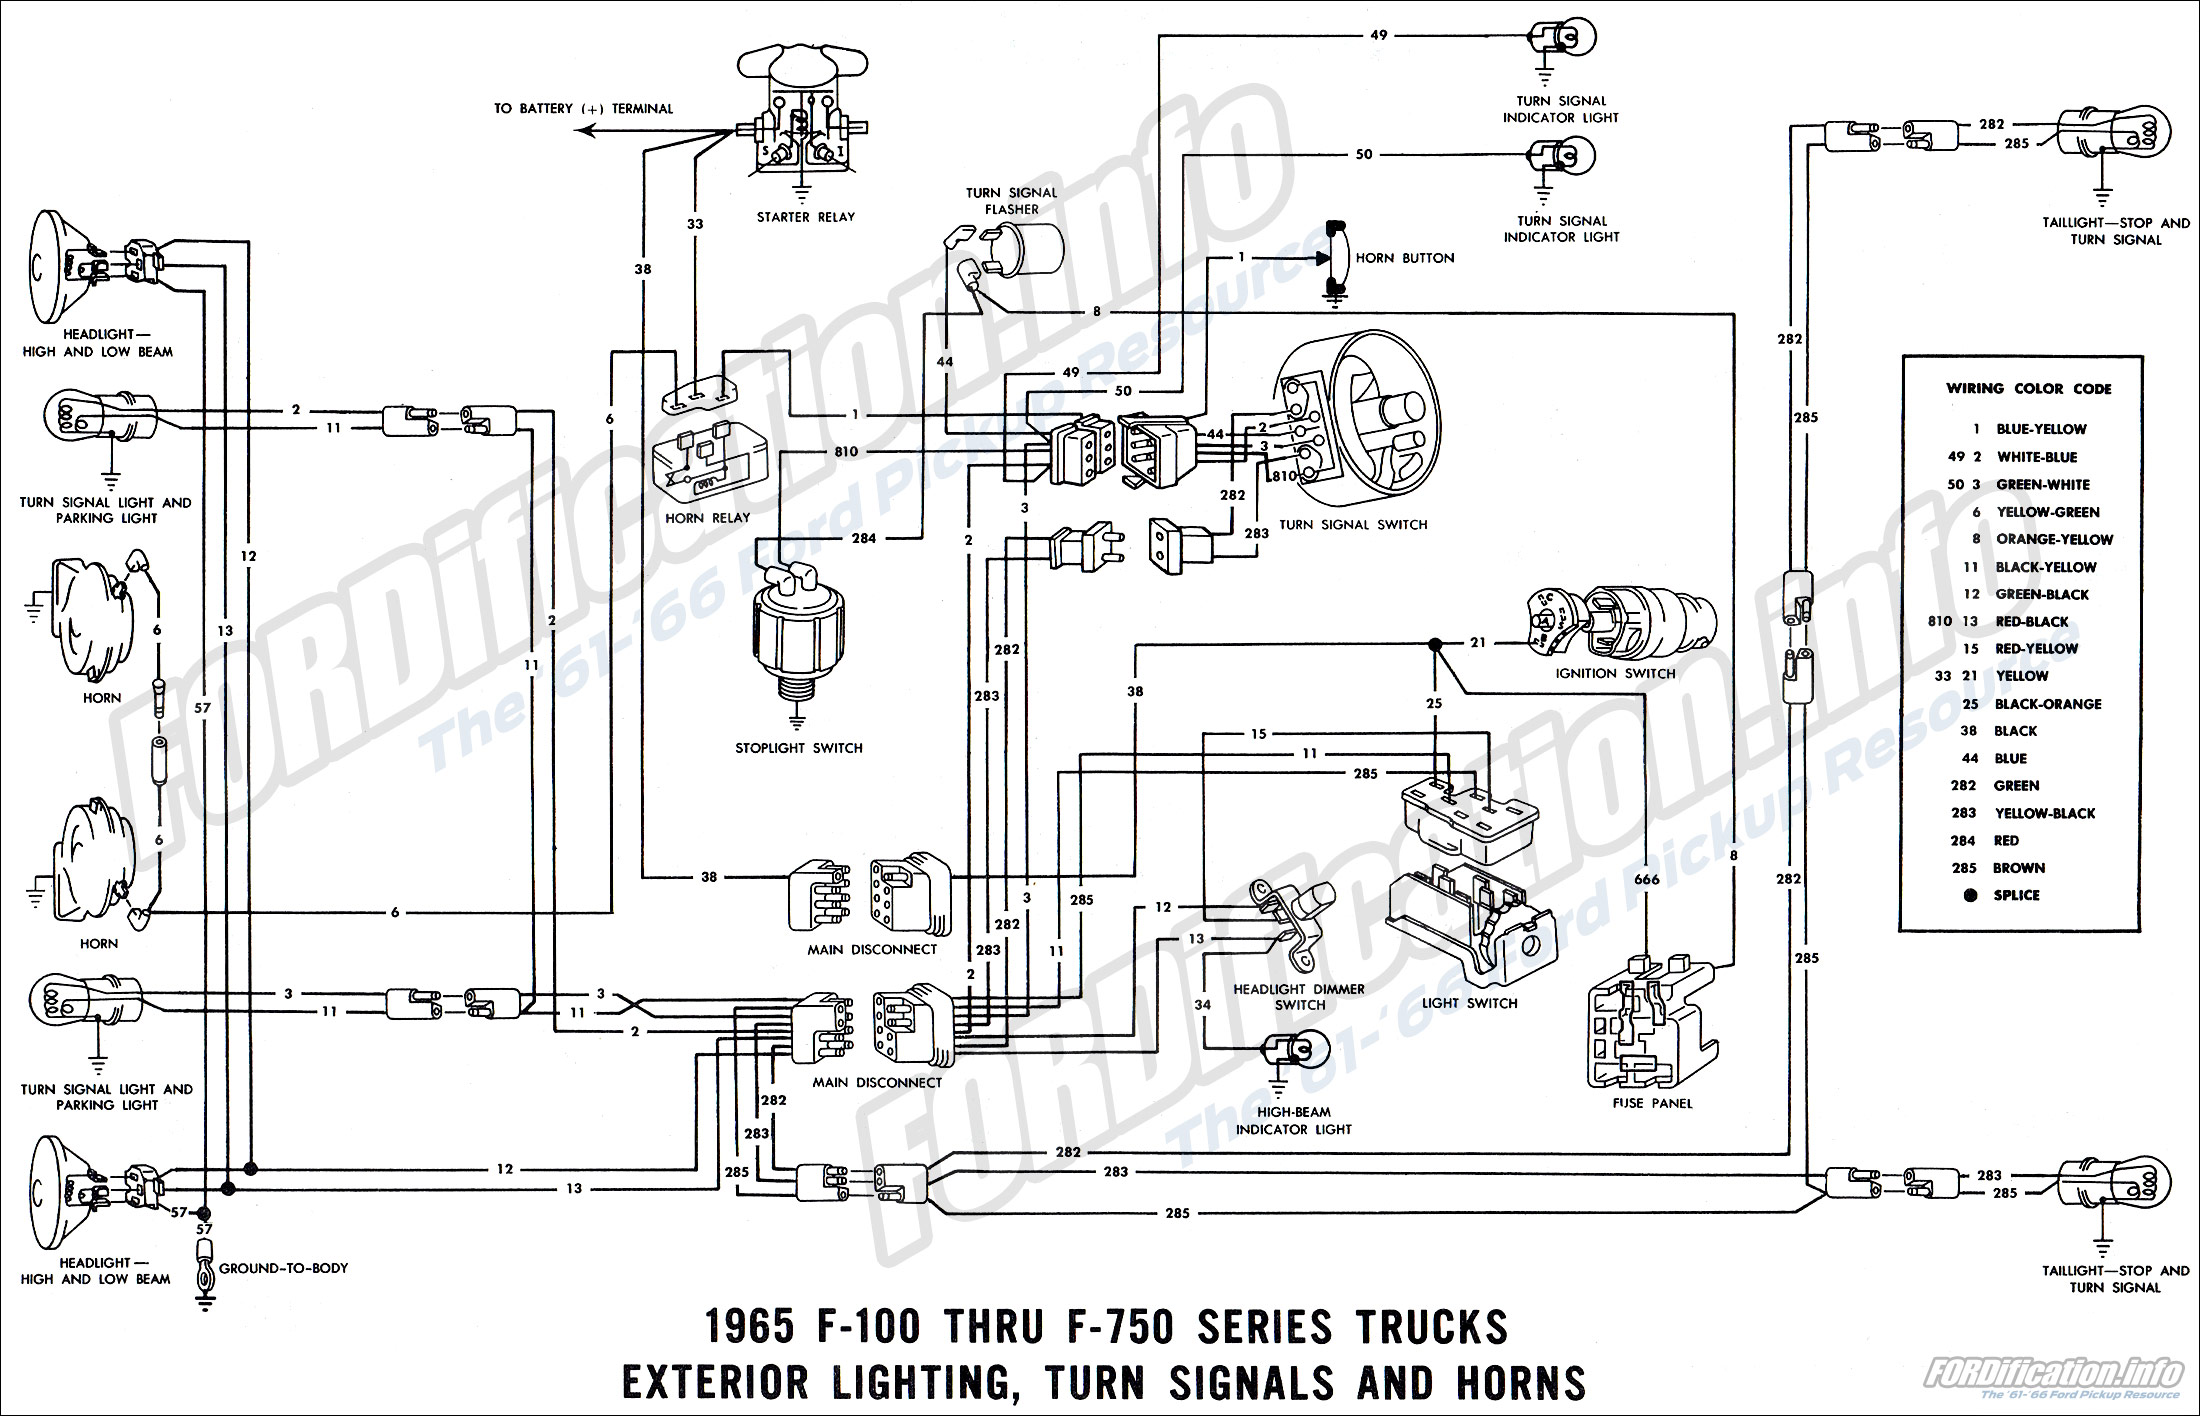 1966 ford pick up horn wiring diagram 1965 ford truck wiring diagrams - fordification.info - the ... 1966 ford pick up heater wiring diagram #2